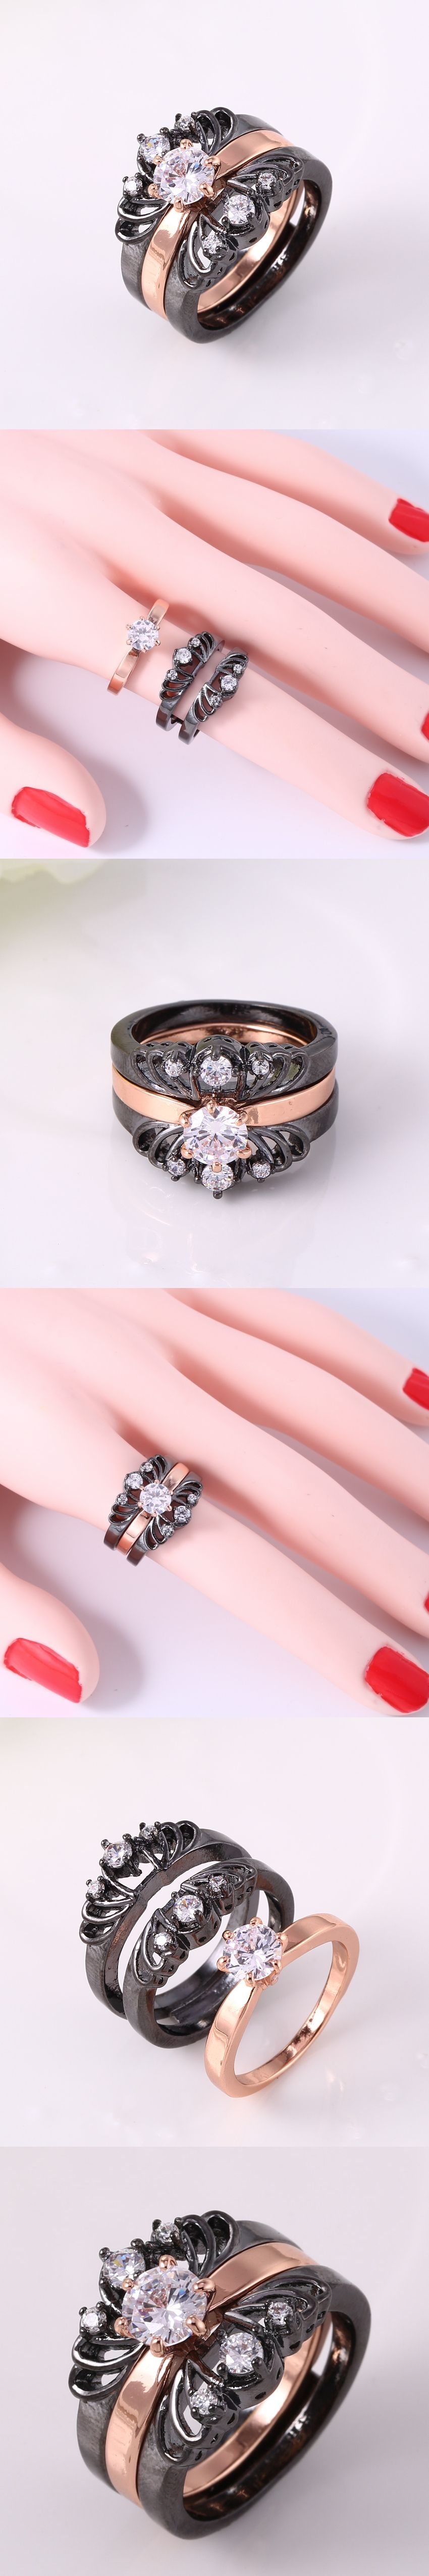 ZHE FAN NEW Women 3 Rings Set AAA Zirconia Black Gold Color Fashion ...